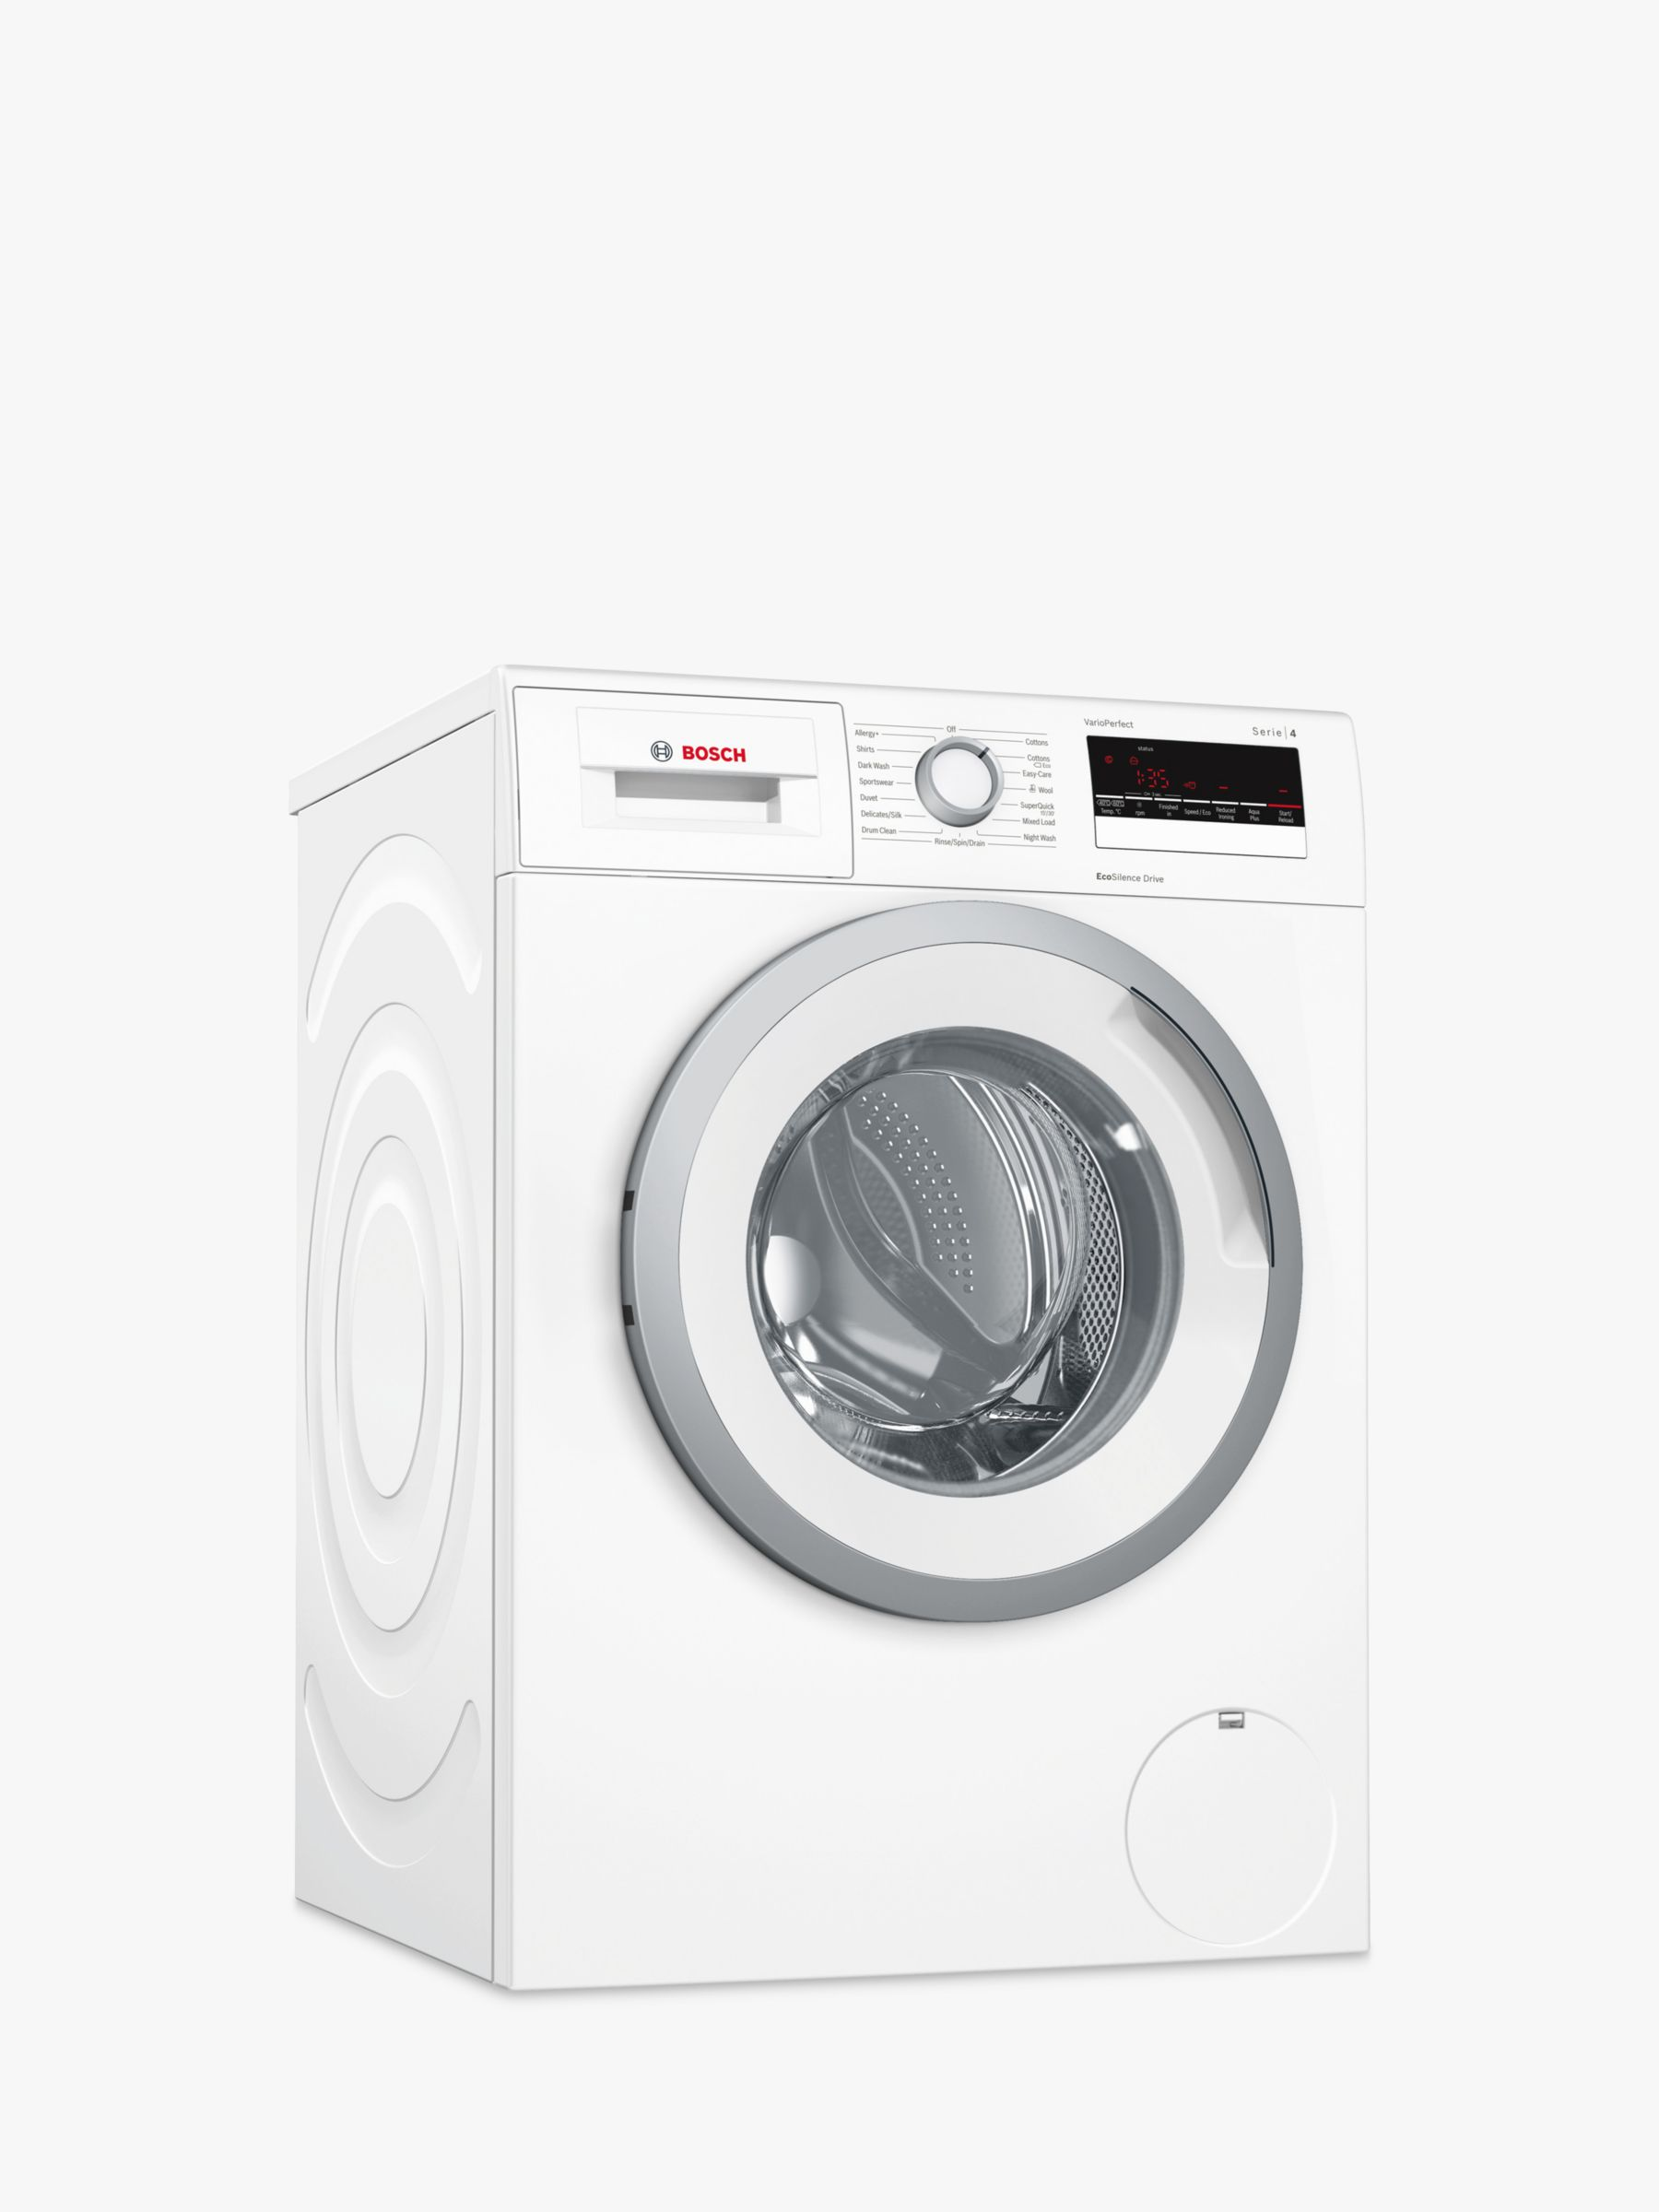 Bosch Bosch WAN28201GB Freestanding Washing Machine, 8kg Load, A+++ Energy Rating, 1400rpm Spin, White